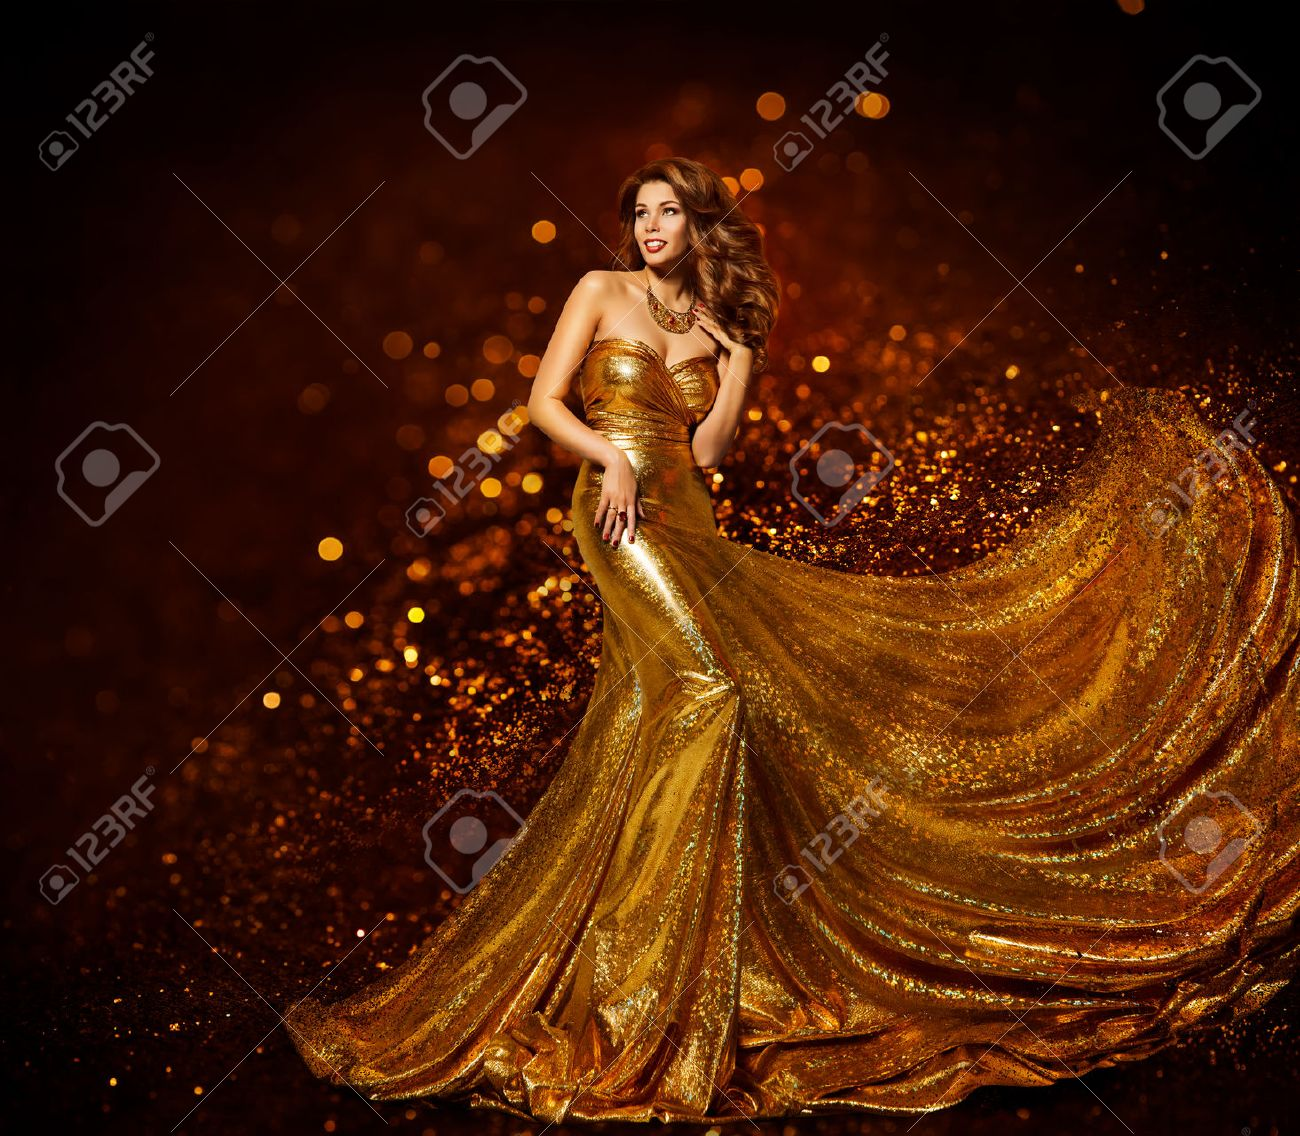 Fashion Woman Gold Dress, Luxury Girl in Elegant Golden Fabric Gown, Flying Sparkles Cloth - 68903872